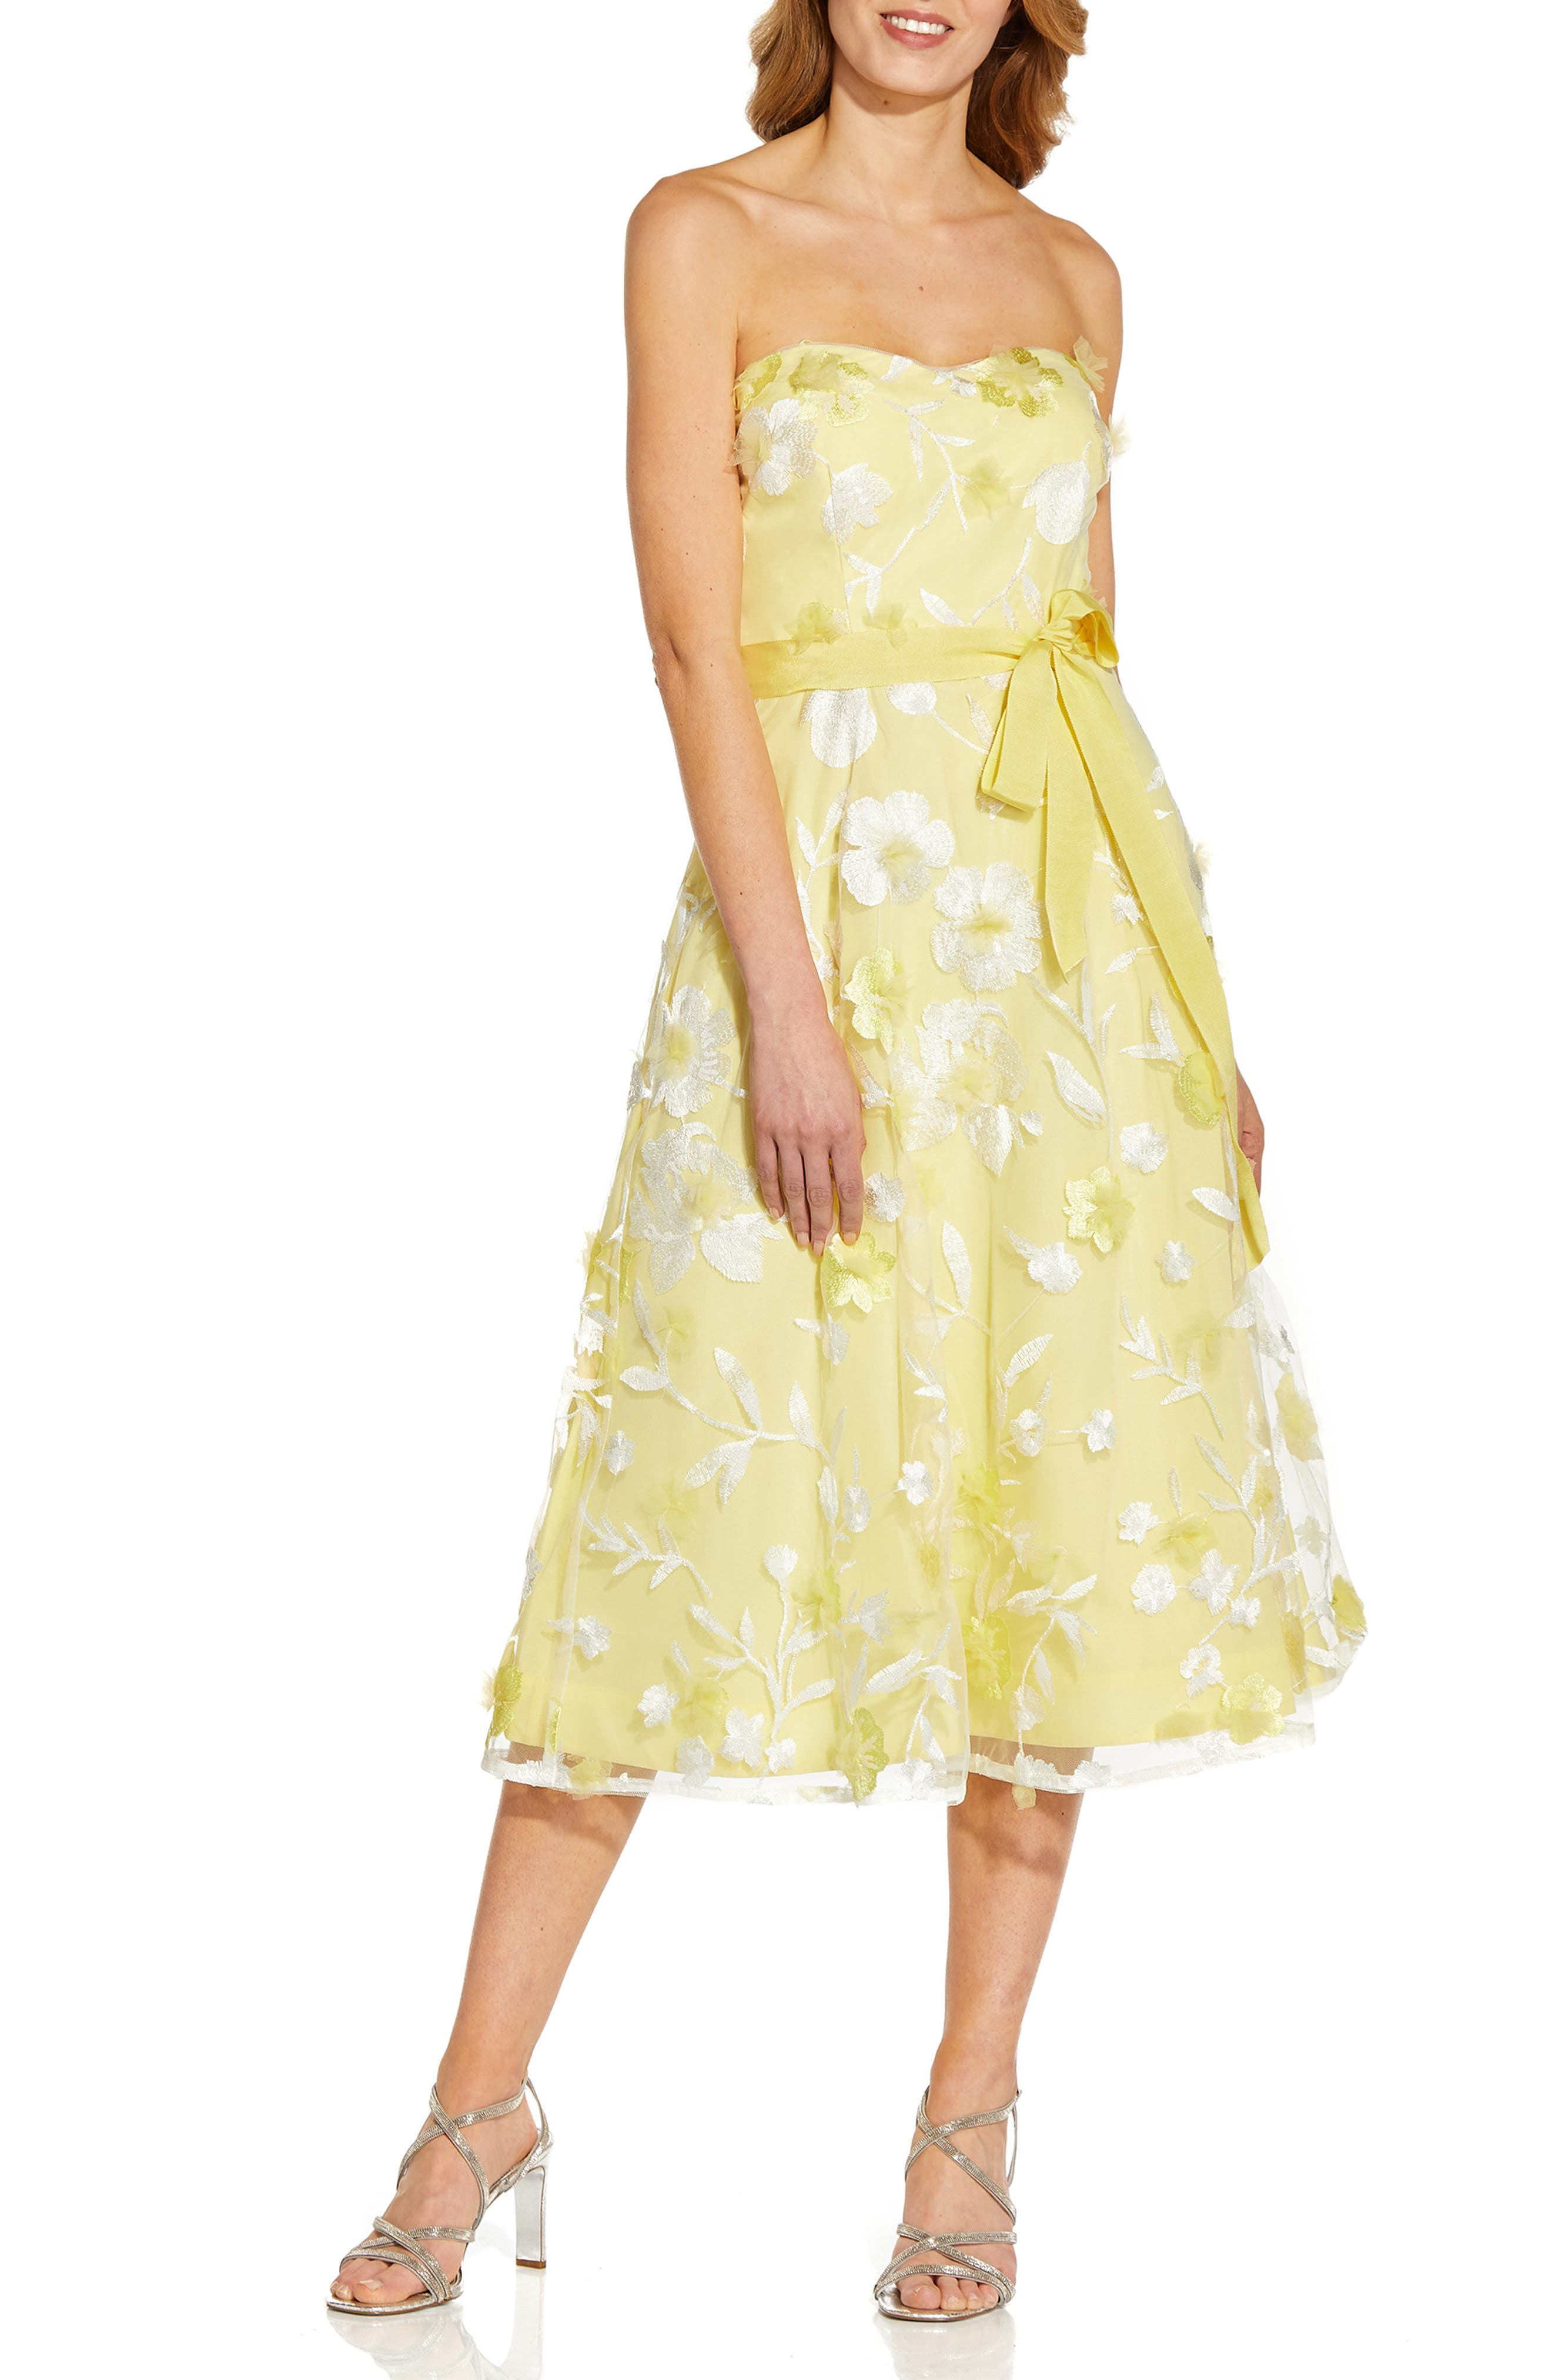 50s Wedding Dress, 1950s Style Wedding Dresses, Rockabilly Weddings Womens Adrianna Papell Floral Embroidered Strapless Cocktail Midi Dress Size 16 - Yellow $249.00 AT vintagedancer.com